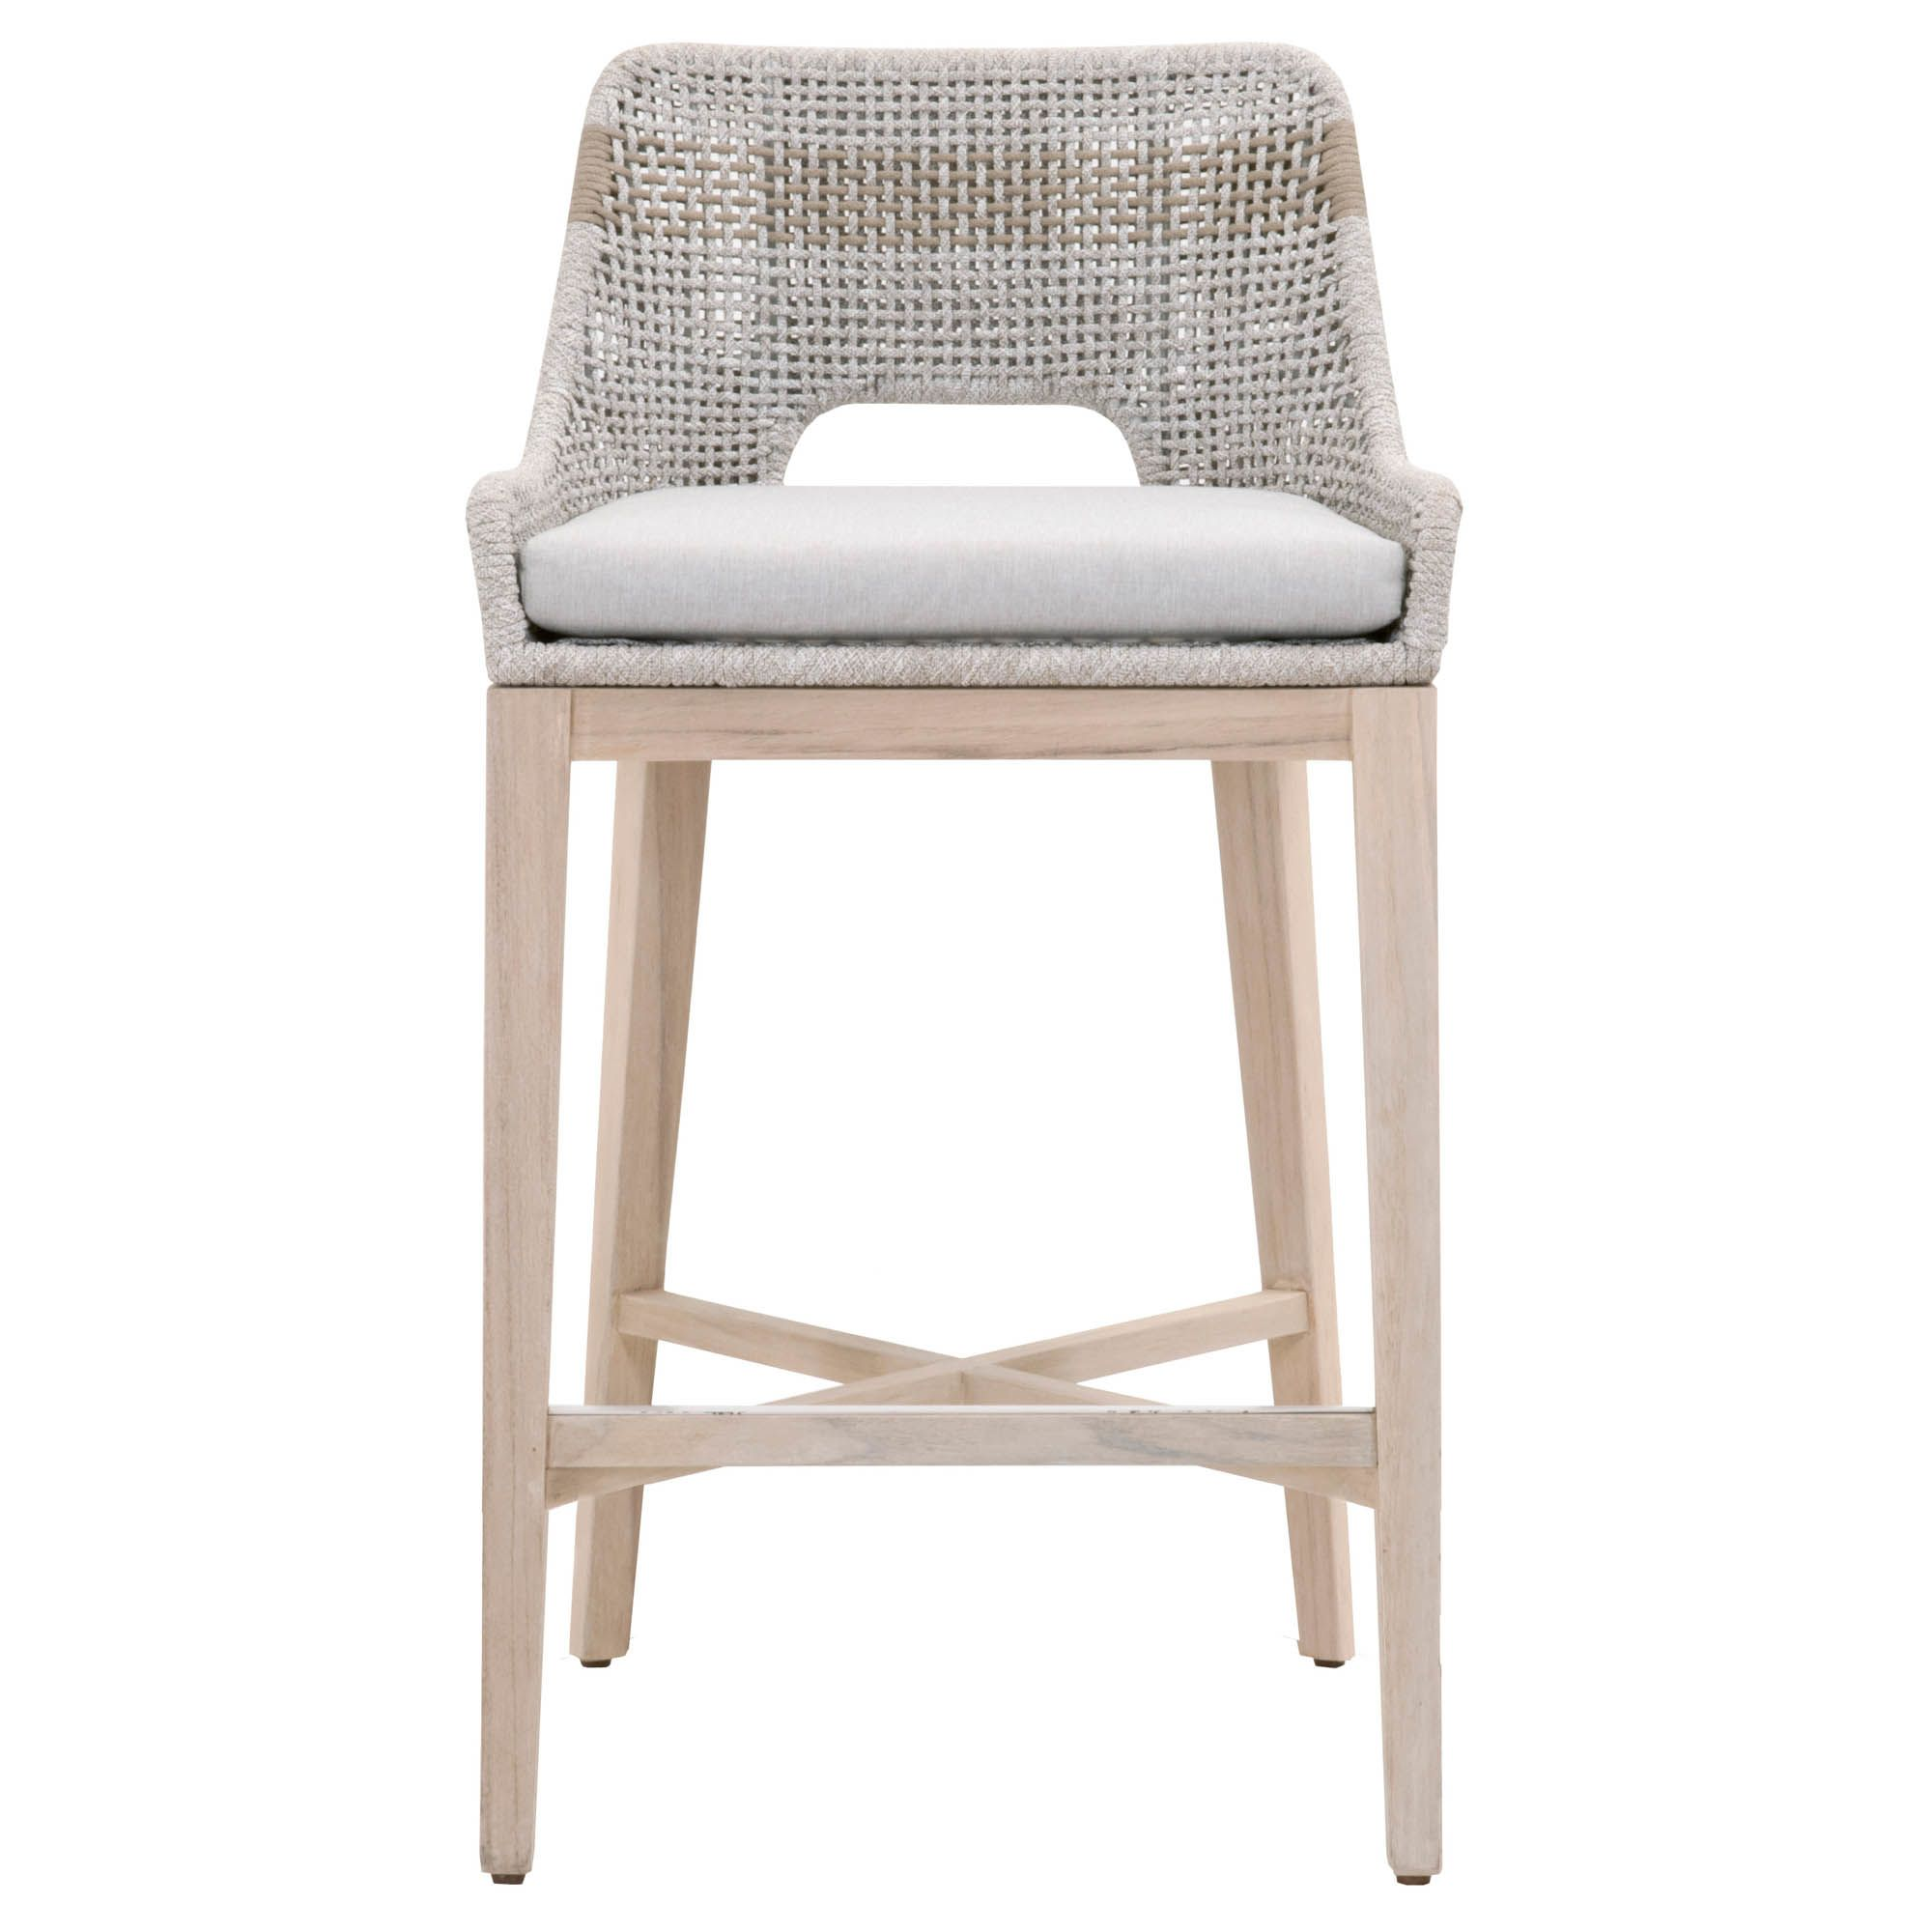 Panorama Indoor Outdoor Bar Stool White Counter Stools Counter Stools Stool